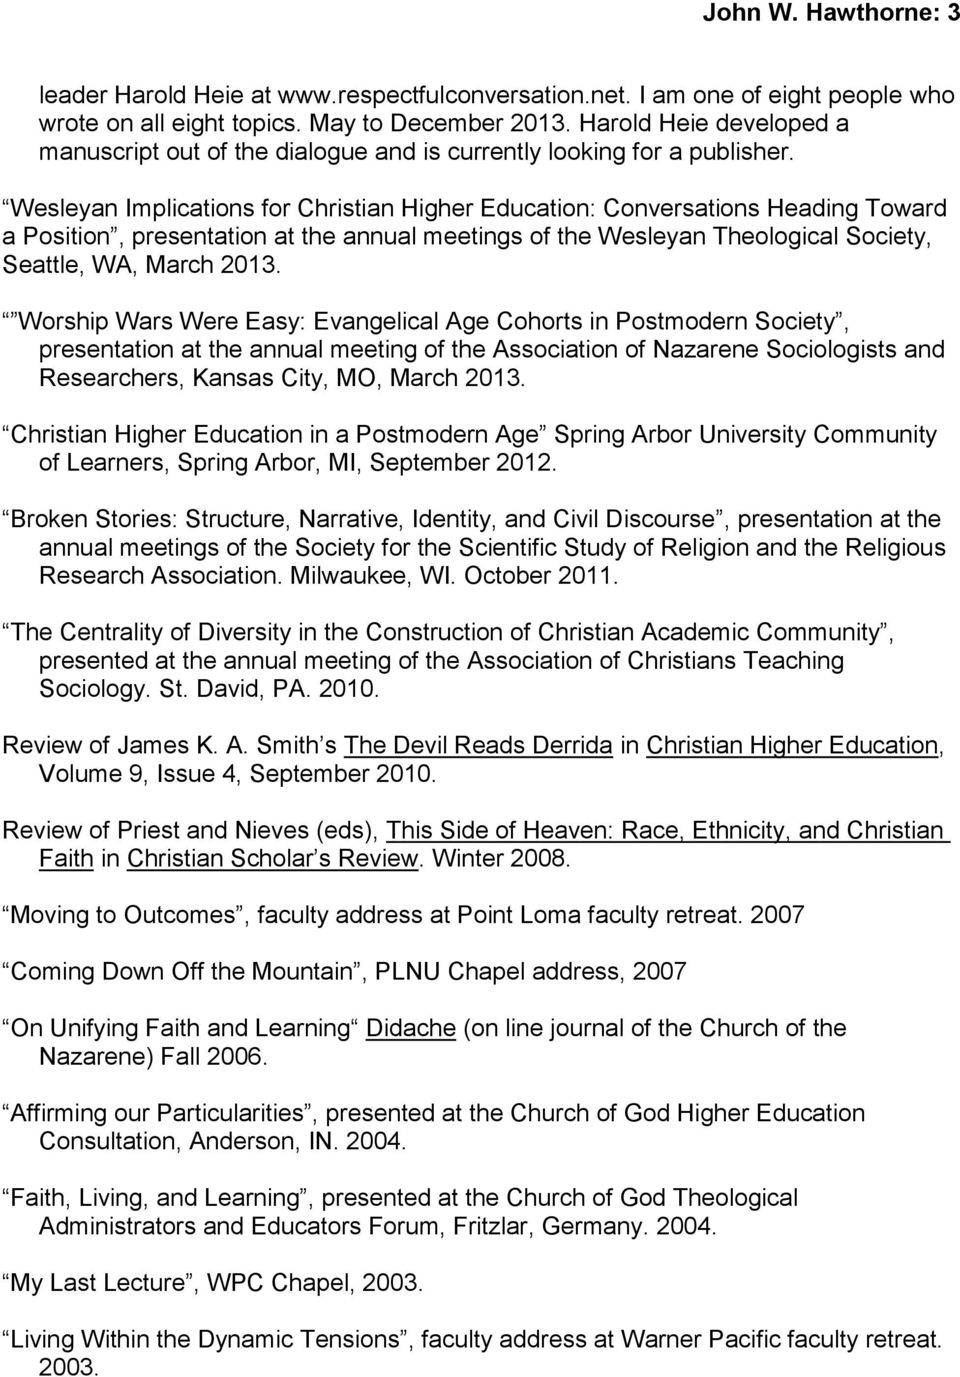 Wesleyan Implications for Christian Higher Education: Conversations Heading Toward a Position, presentation at the annual meetings of the Wesleyan Theological Society, Seattle, WA, March 2013.